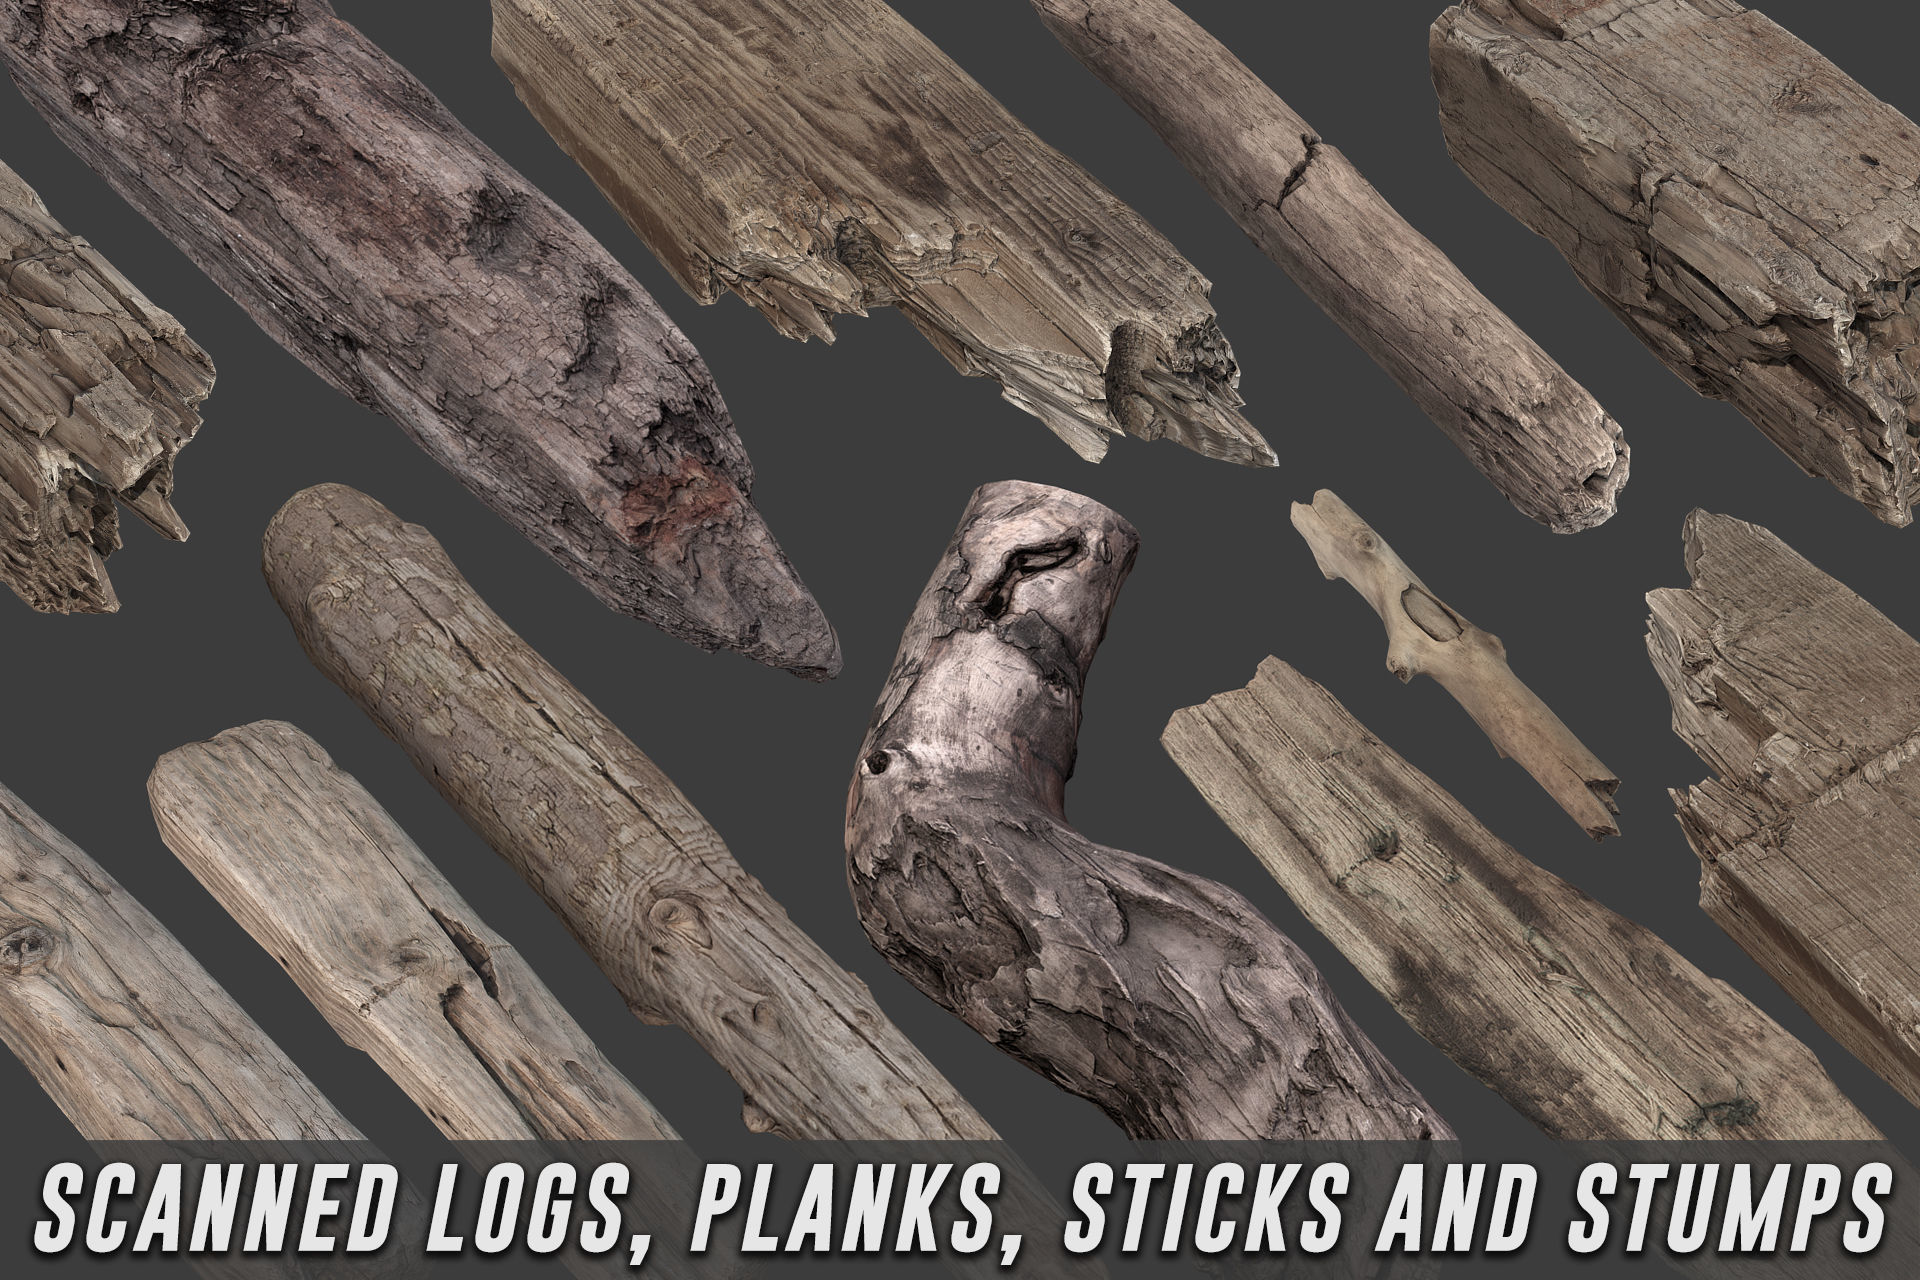 Scanned Logs Planks Sticks and Stumps